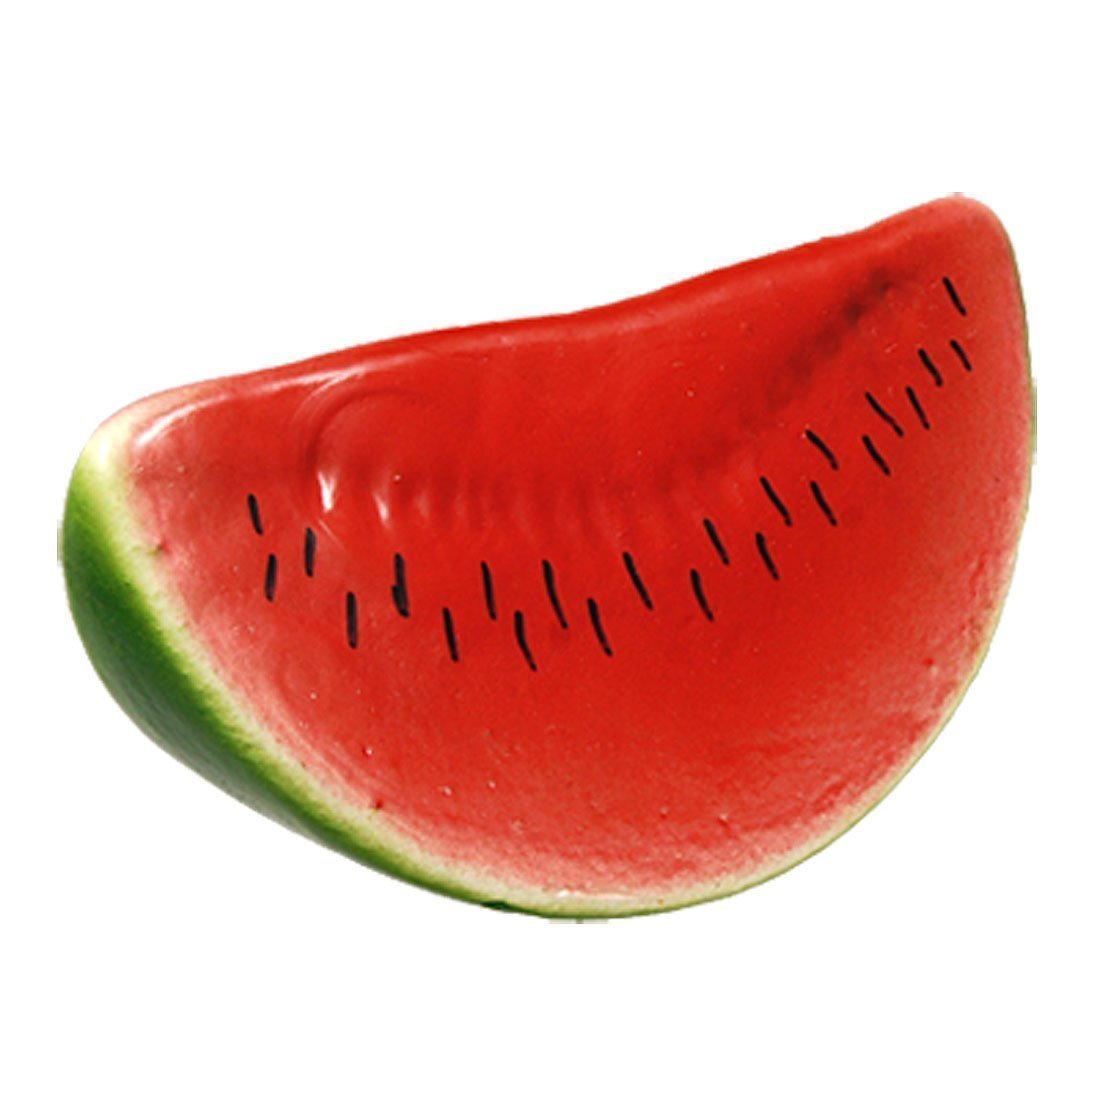 Artificial Simulation Watermelon Fruit Table Ornament SODIAL(R) Ros-9489